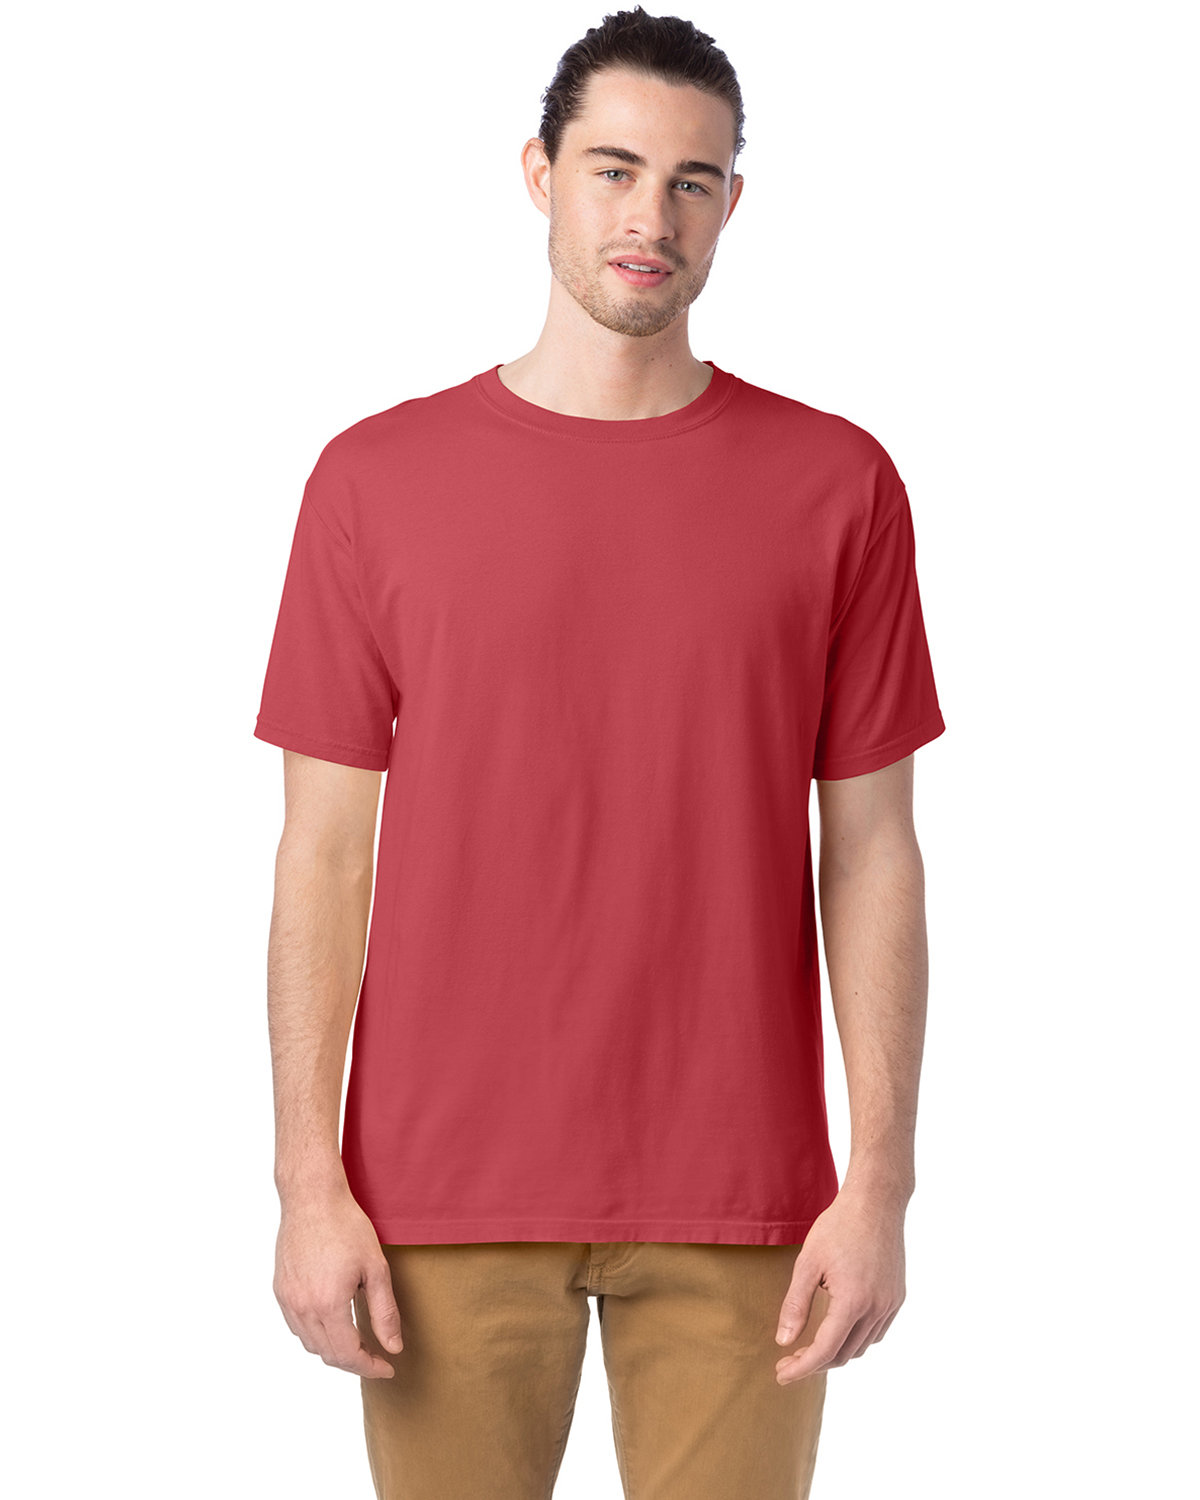 ComfortWash by Hanes Men's 5.5 oz., 100% Ringspun Cotton Garment-Dyed T-Shirt CRIMSON FALL